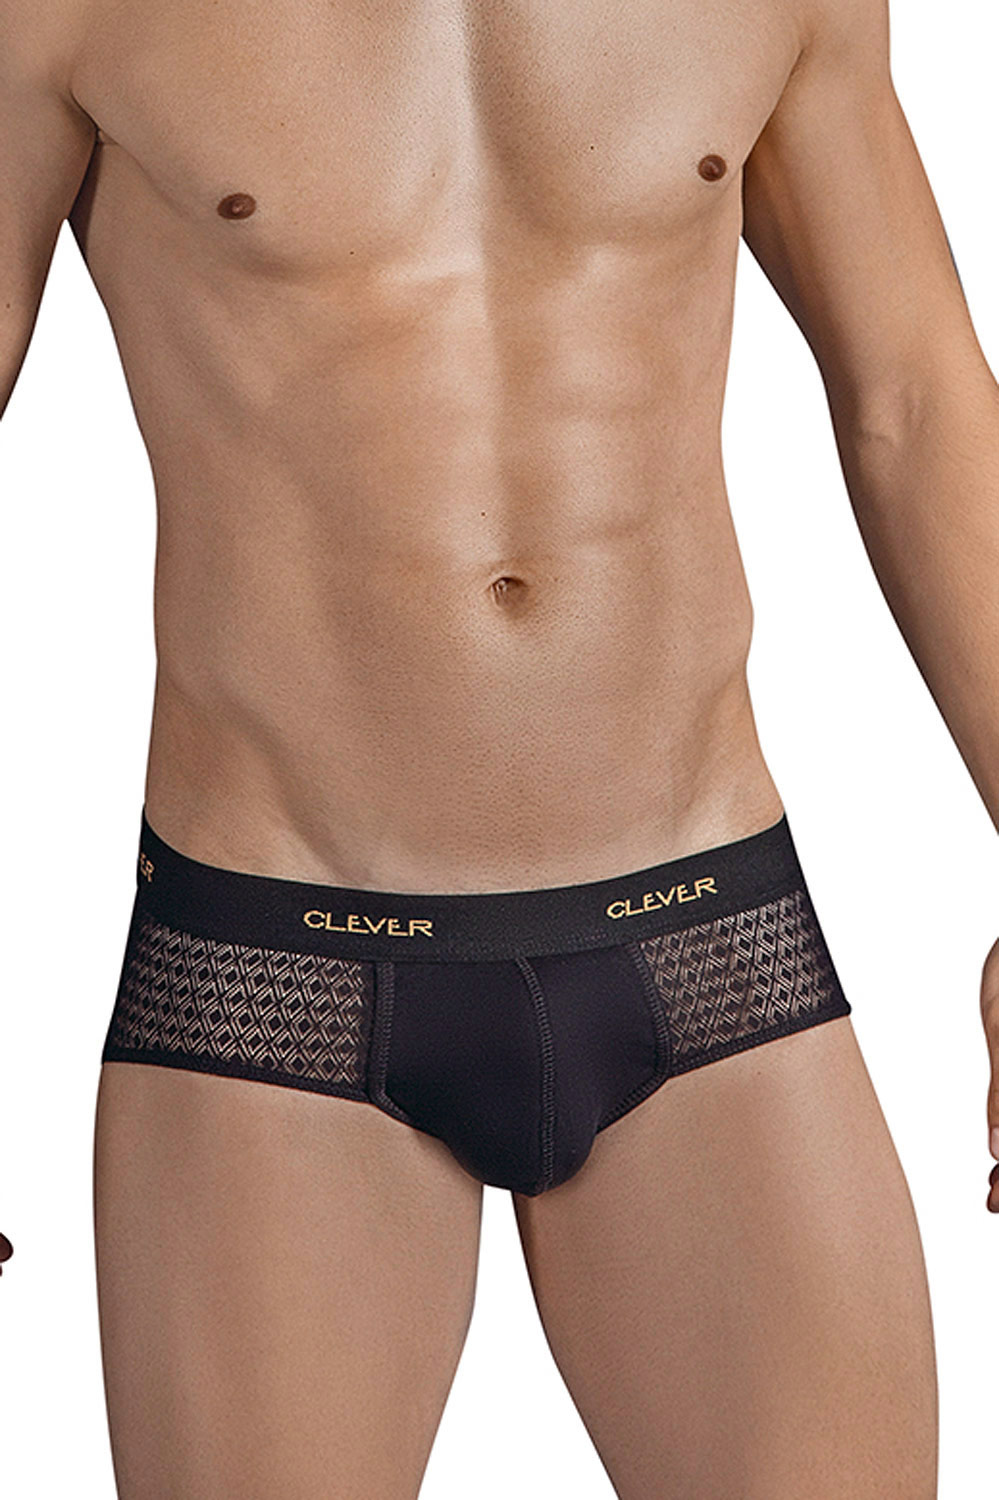 CLEVER MODA brief at oboy.com